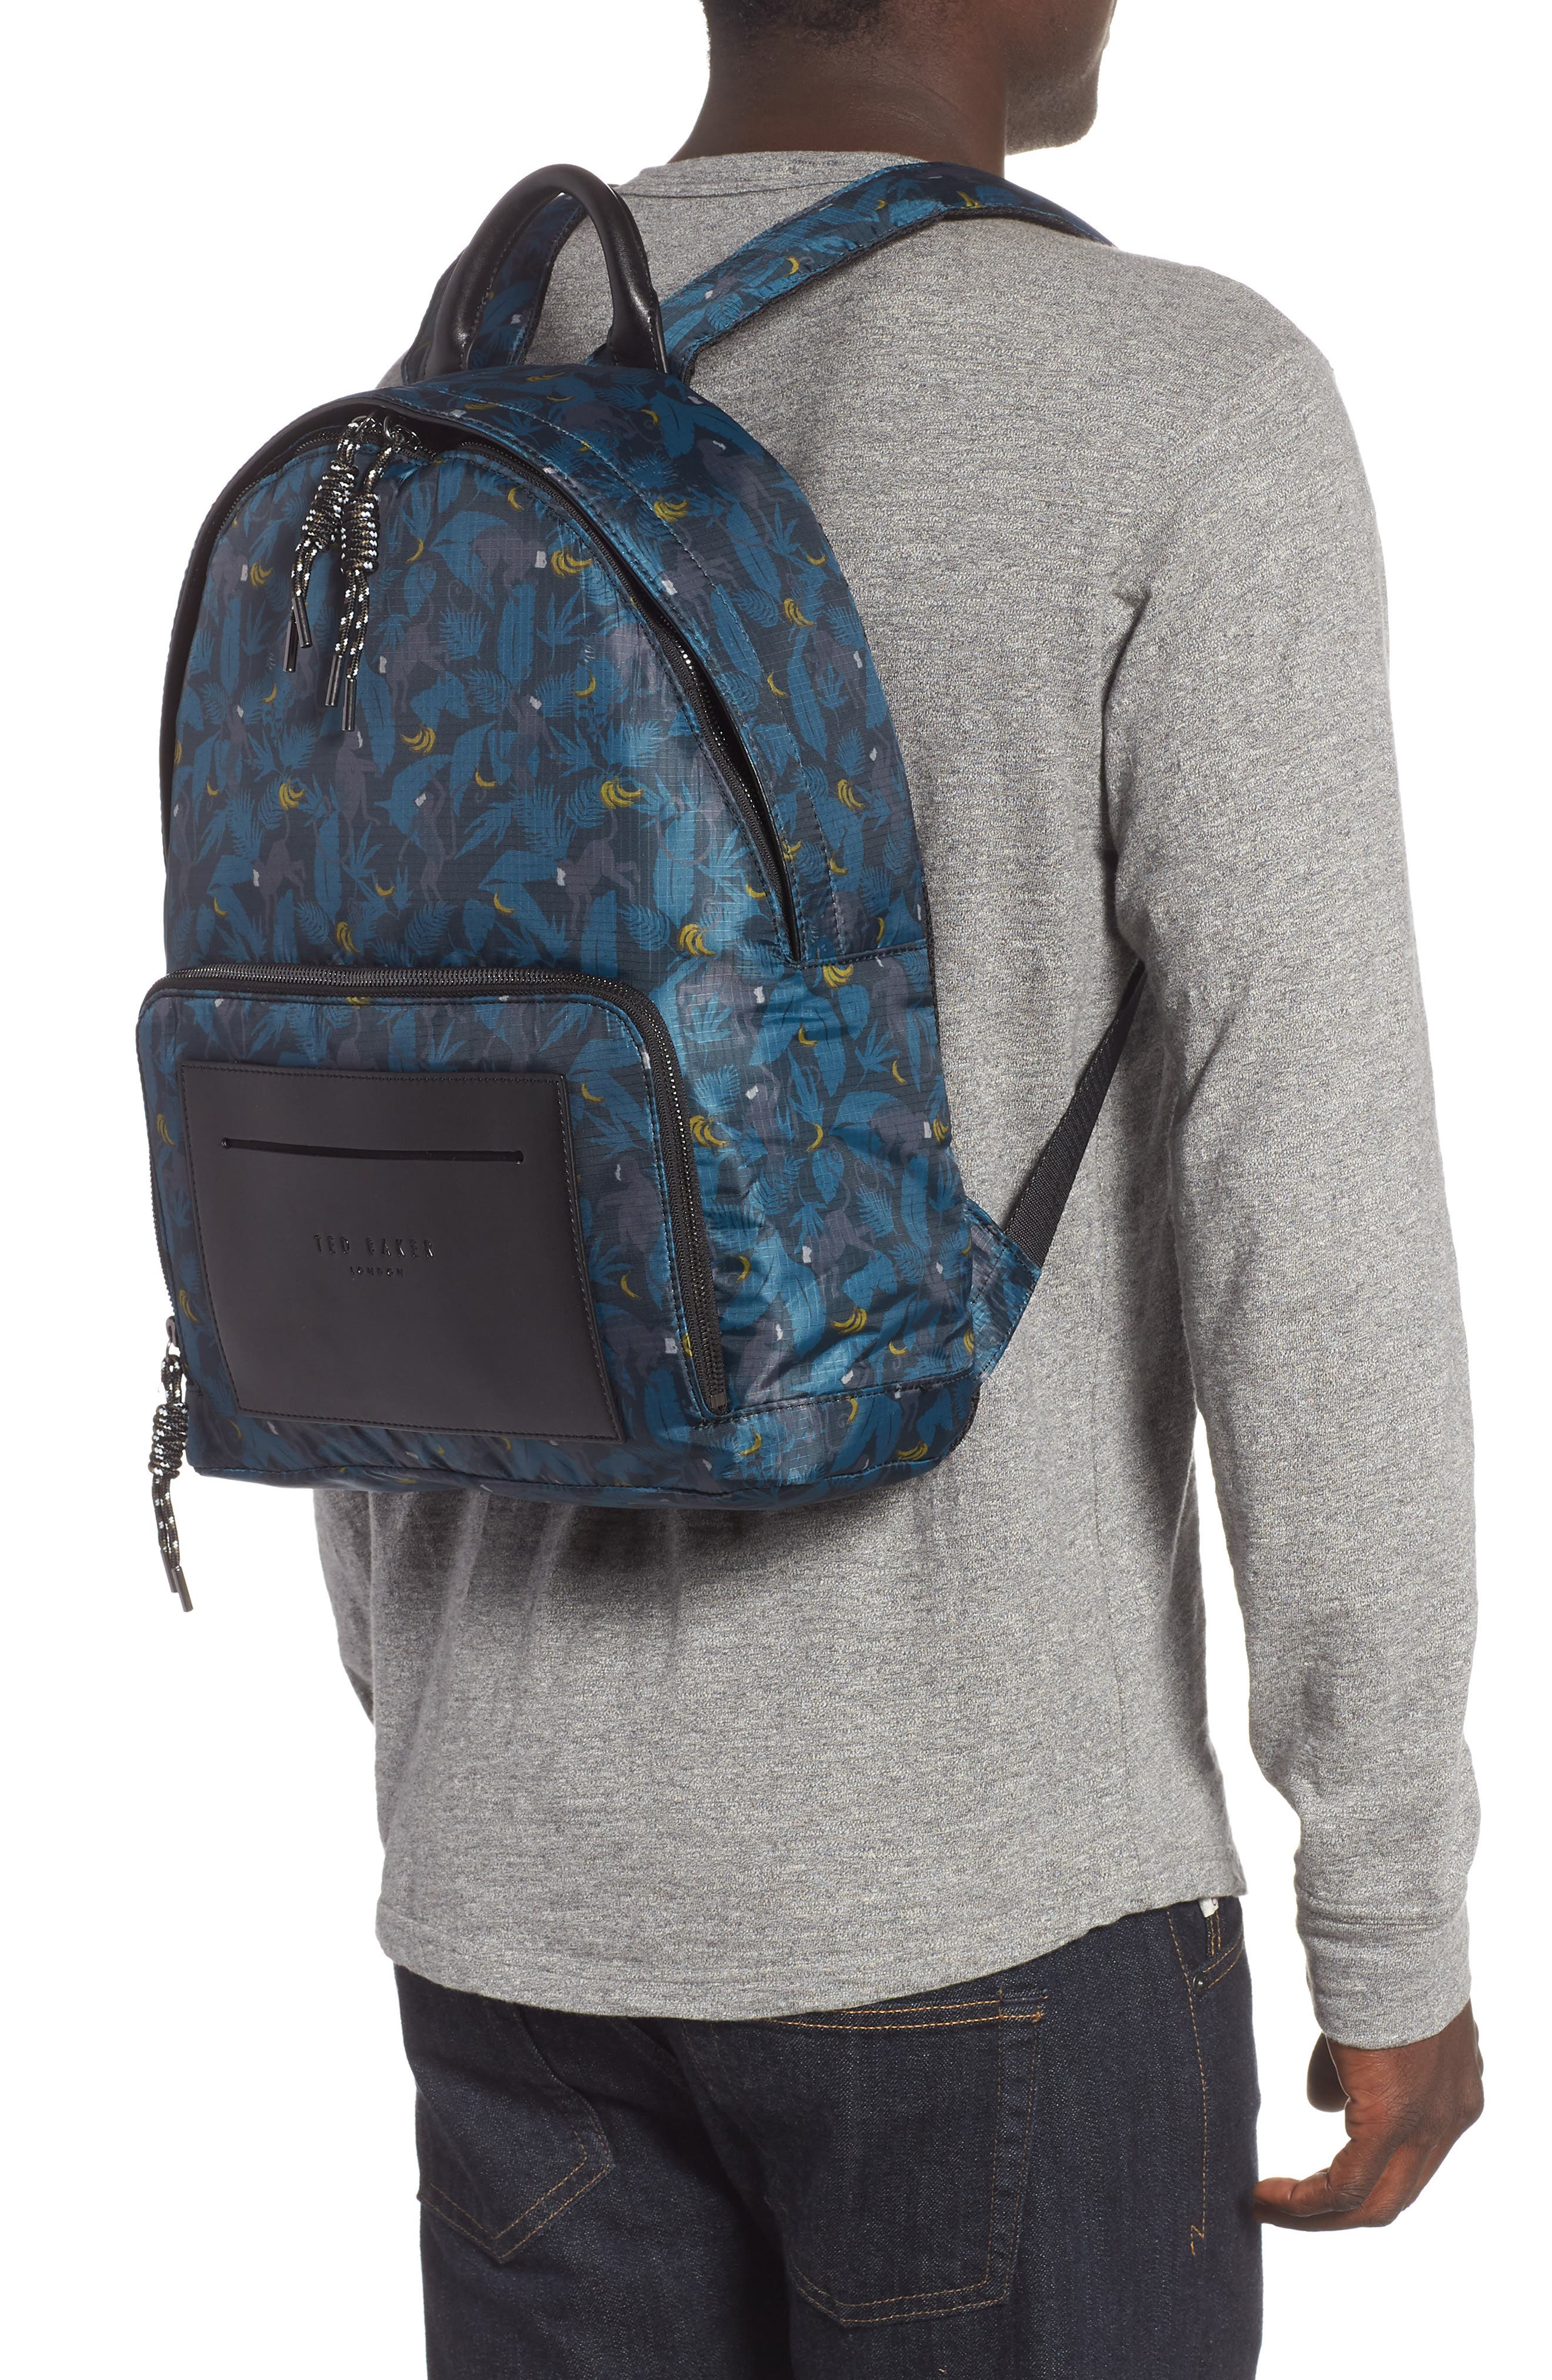 Primate Print Backpack,                             Alternate thumbnail 2, color,                             NAVY